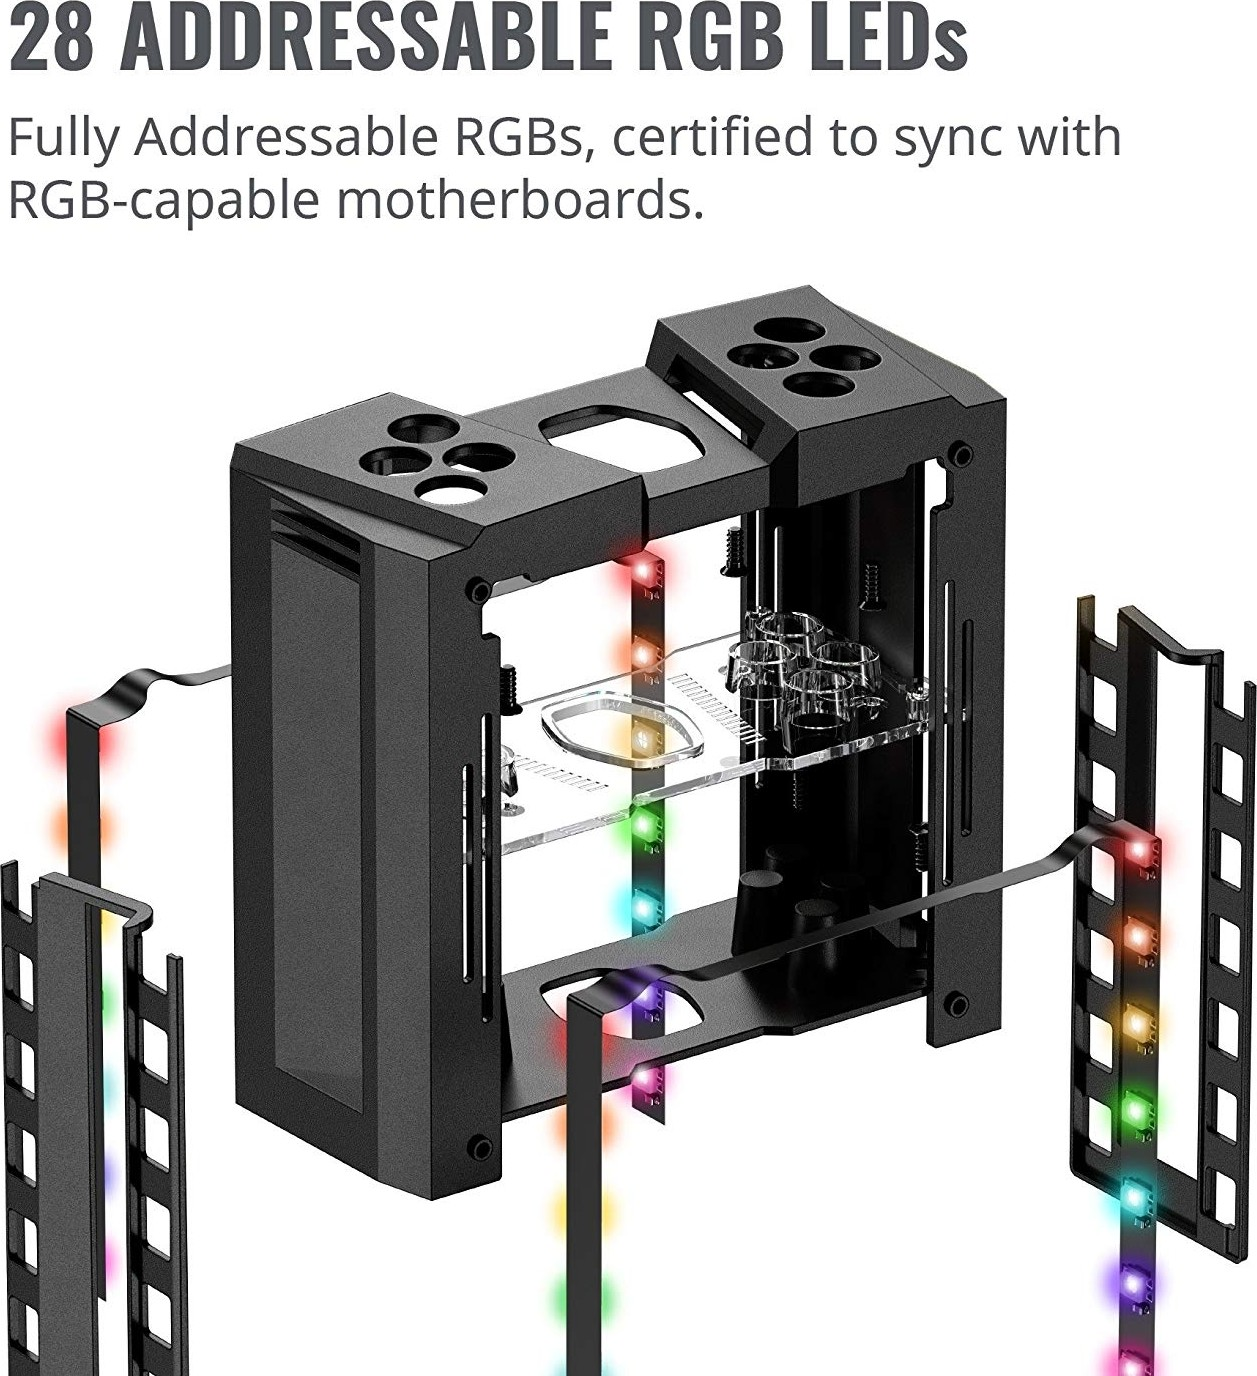 Cooler Master MasterAir MA410M 28 Addressable RGB LED Lighting CPU Air  Cooler 4 Heat pipes, Thermal